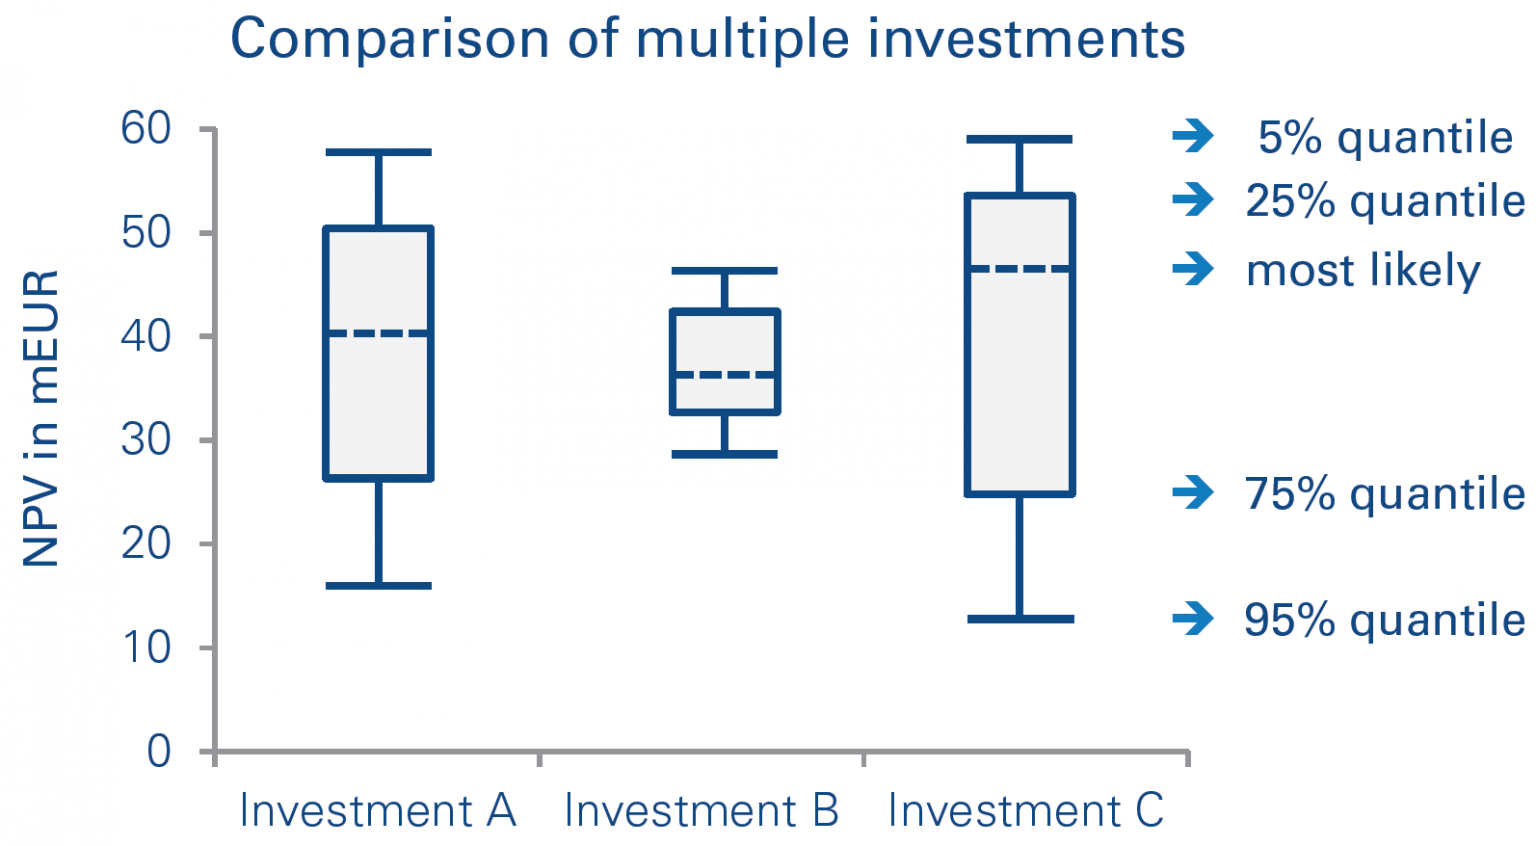 Investments with the highest-expected NPV may also provide the highest downside potential